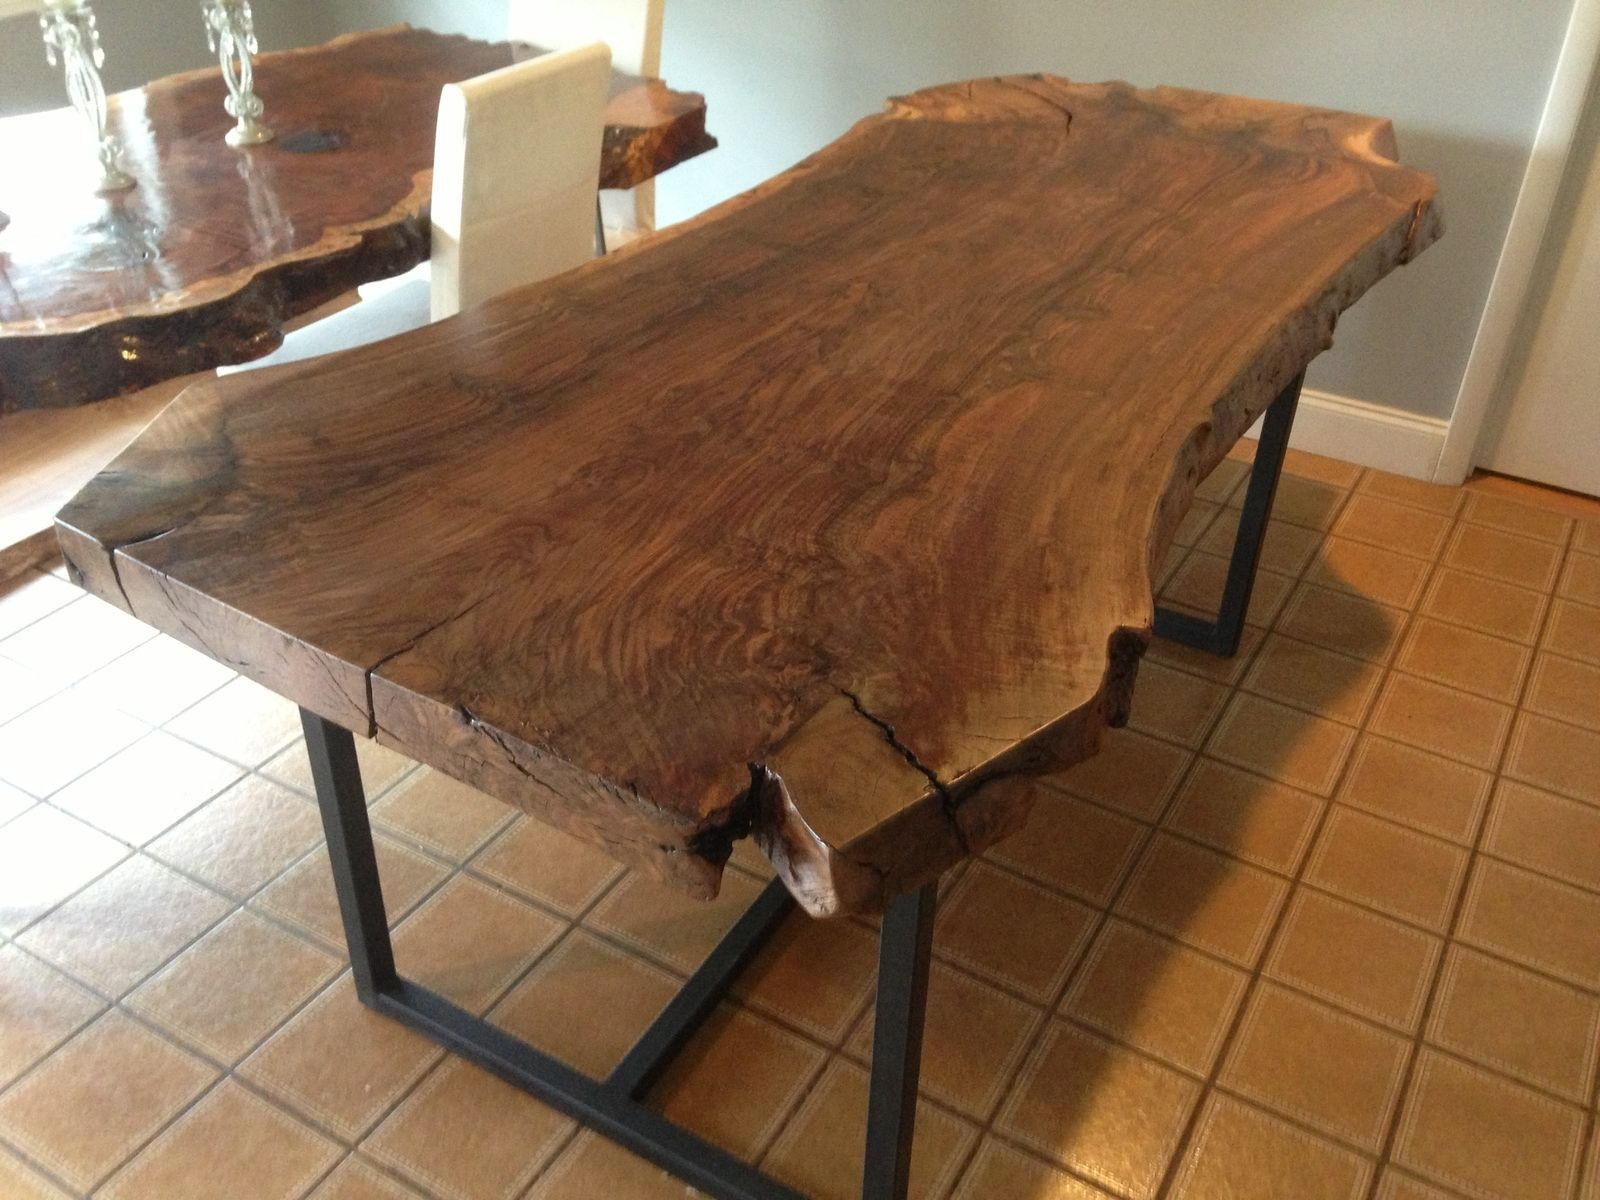 Handmade live edge claro walnut dining table by ozma for Table bois brut